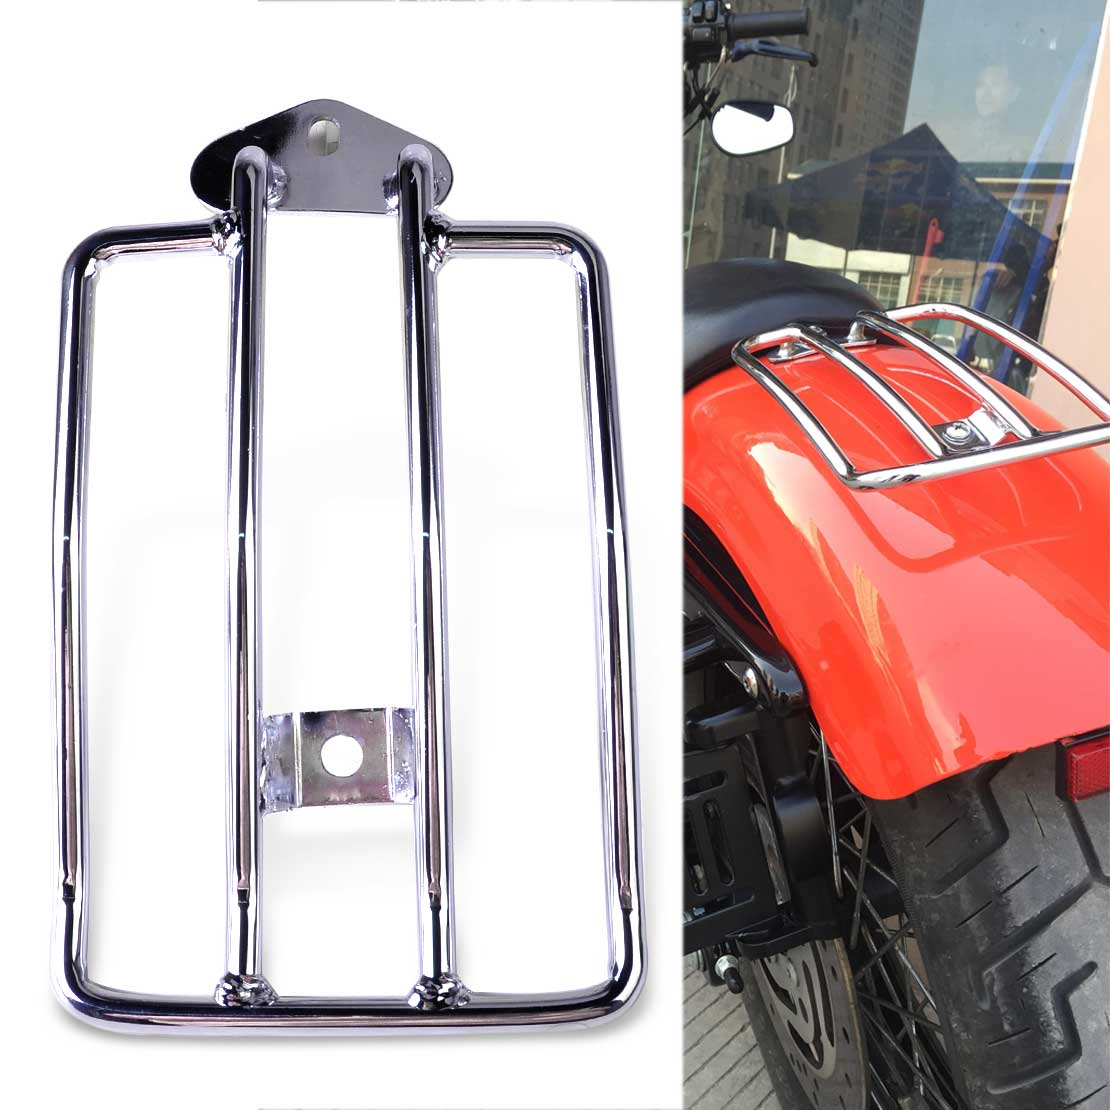 beler New 1Pc Silver Motorcycle Seat Luggage Shelf Carrier Support Rack Fit for Harley Davidson Sportster 1200 Sportster 883 brand new silver color motortcycle accessories abs plastic led tail light fit for harley harley iron 883 xl883n xl1200n chopped